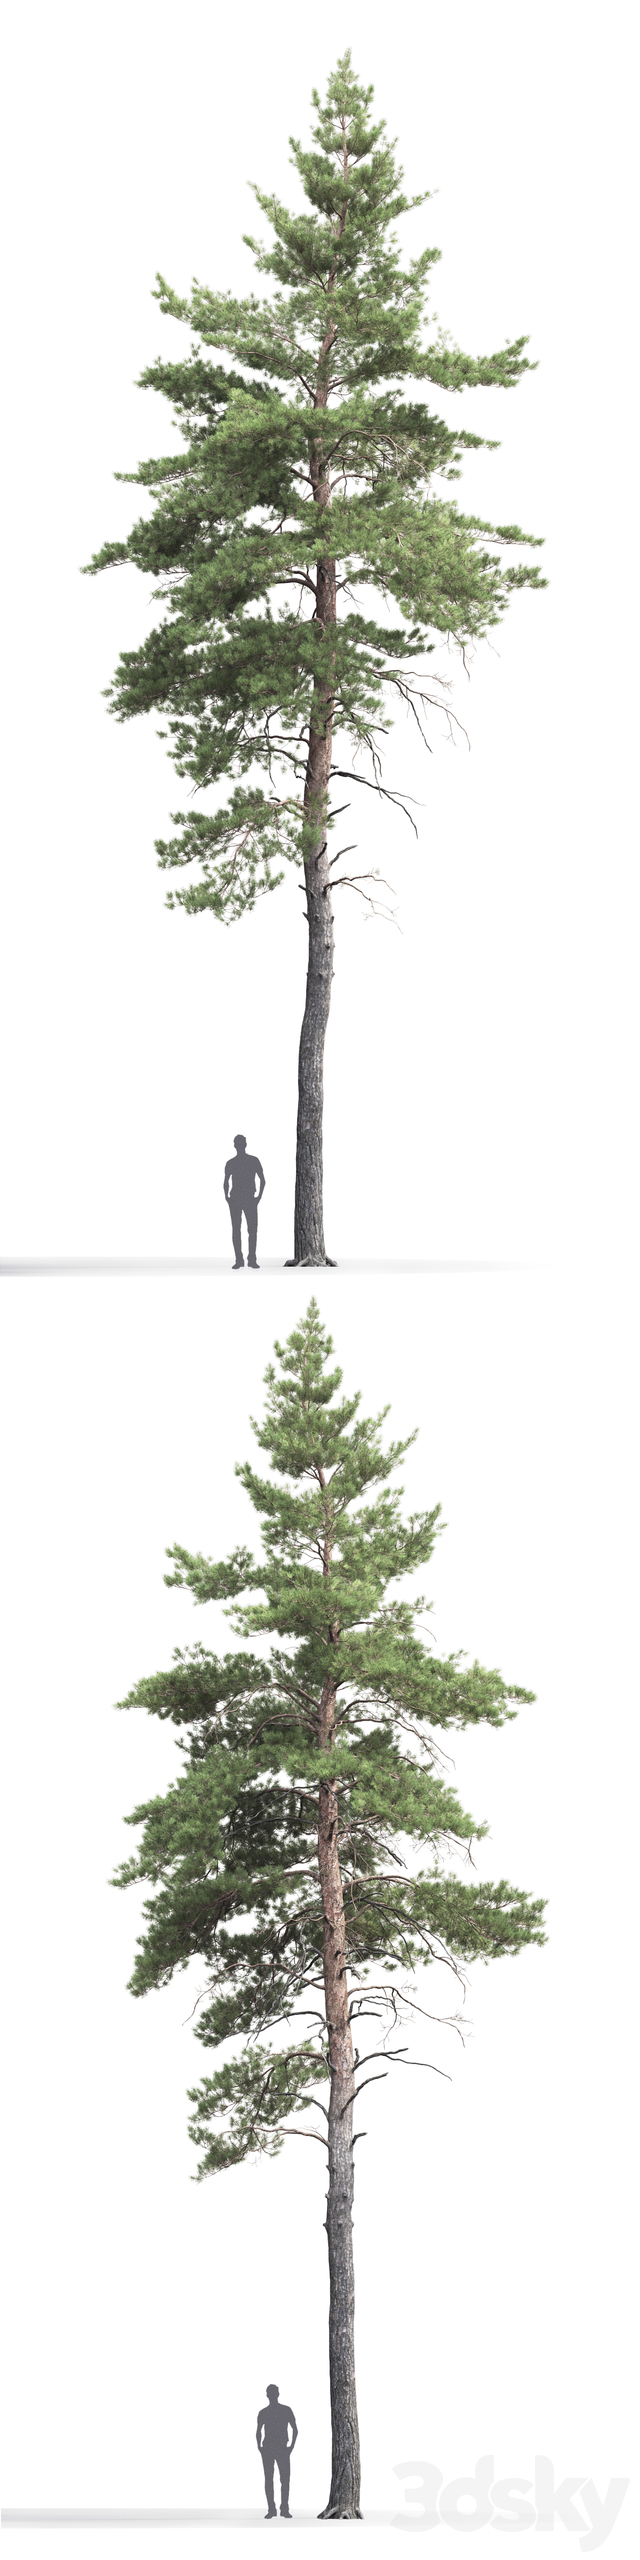 Pine ordinary # 7 (17m)